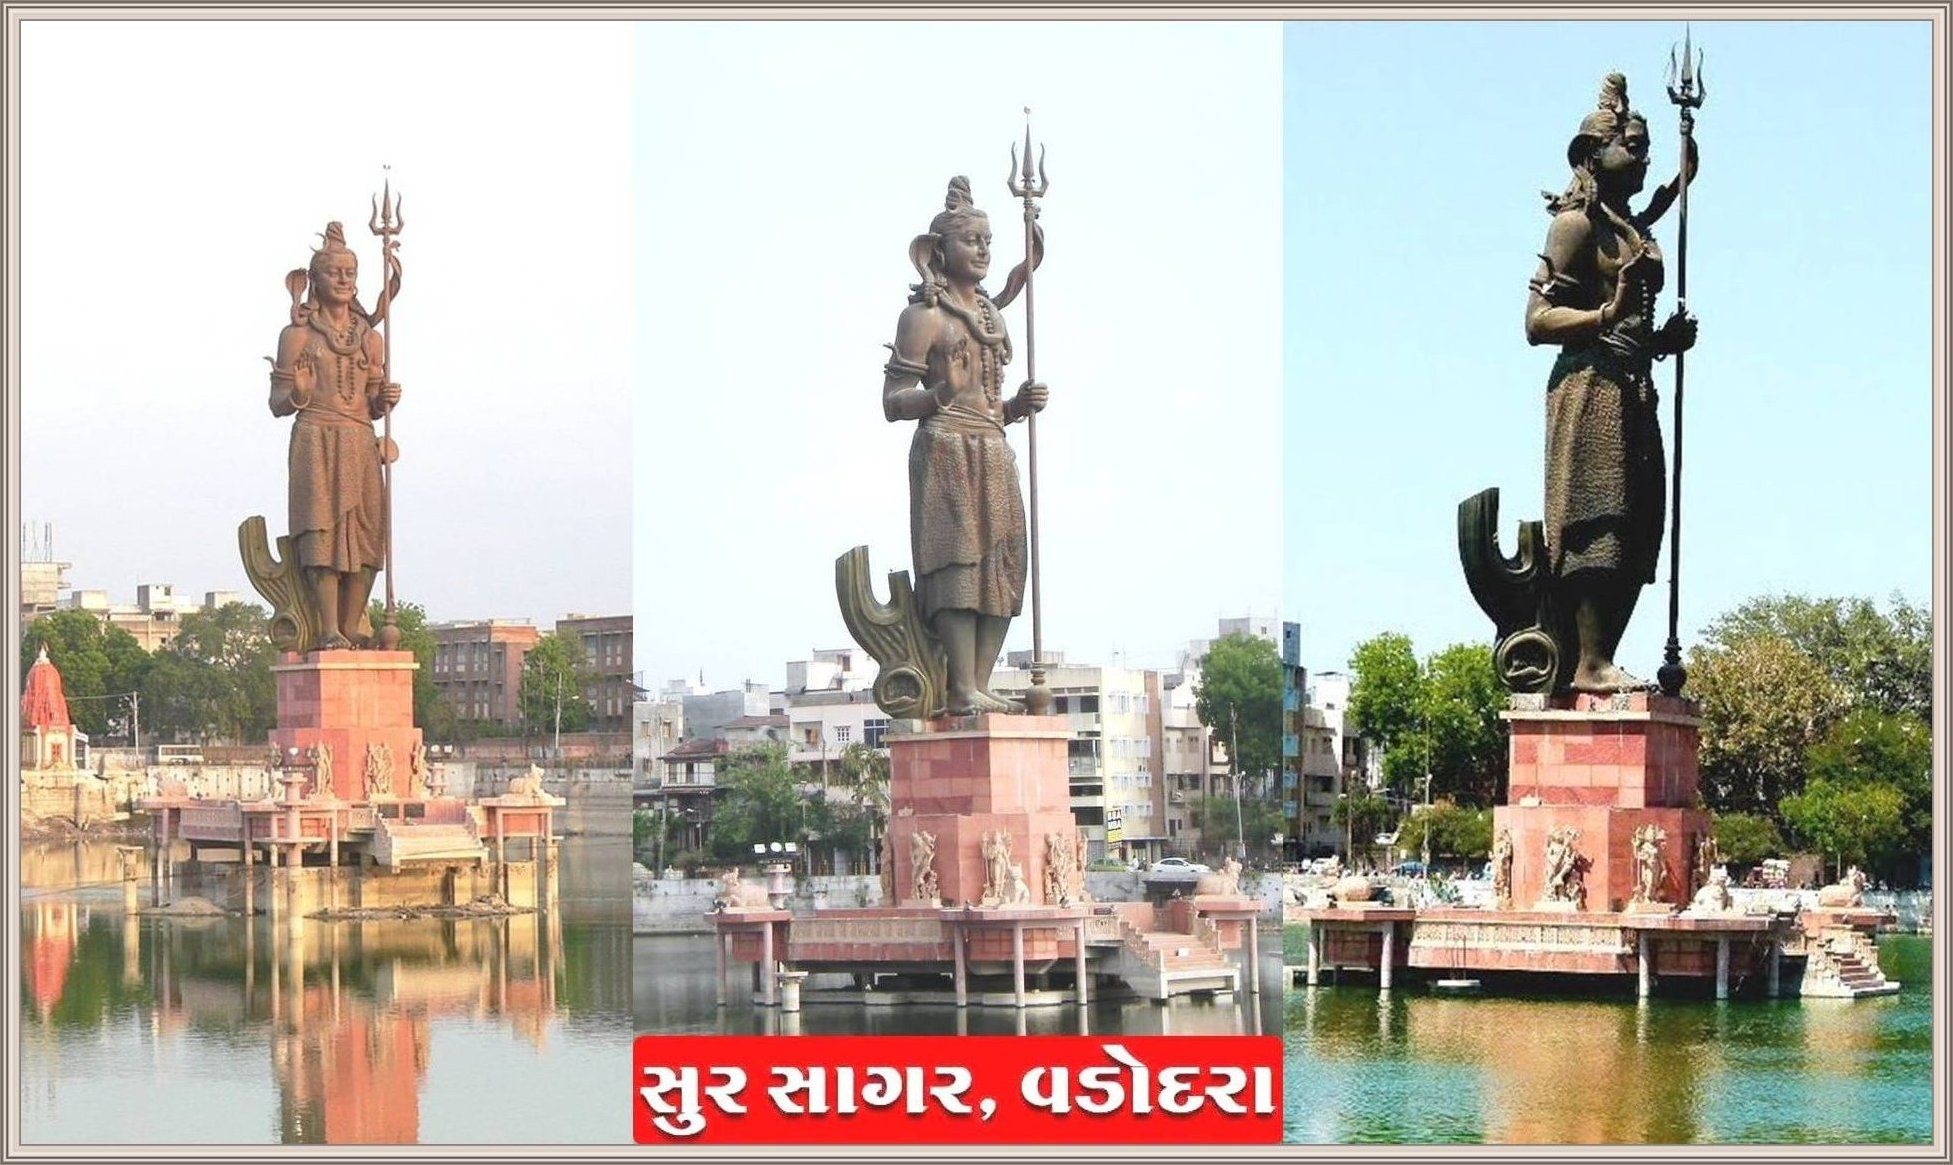 120 Feet Height Tallest Statue Of Lord Shiva Known As Sarveshwar